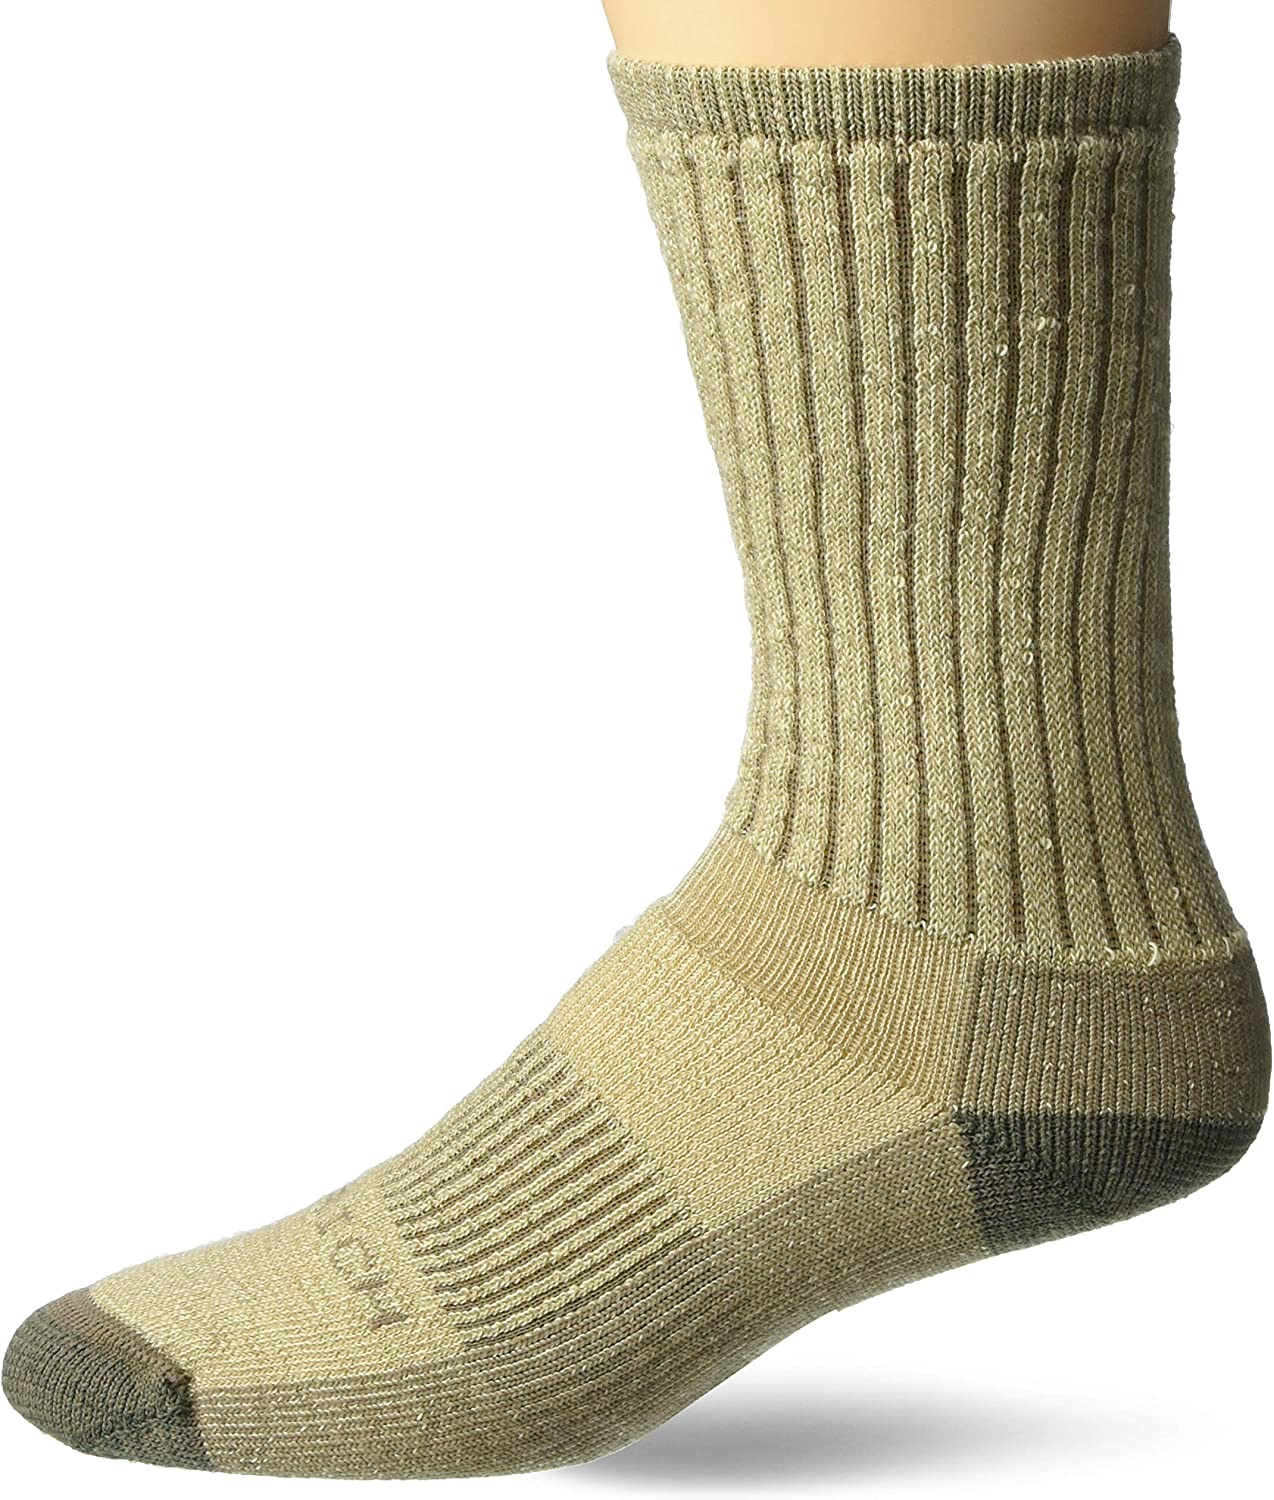 Woolrich Unisex-Adult's Ten Mile Hiker Wool Sock